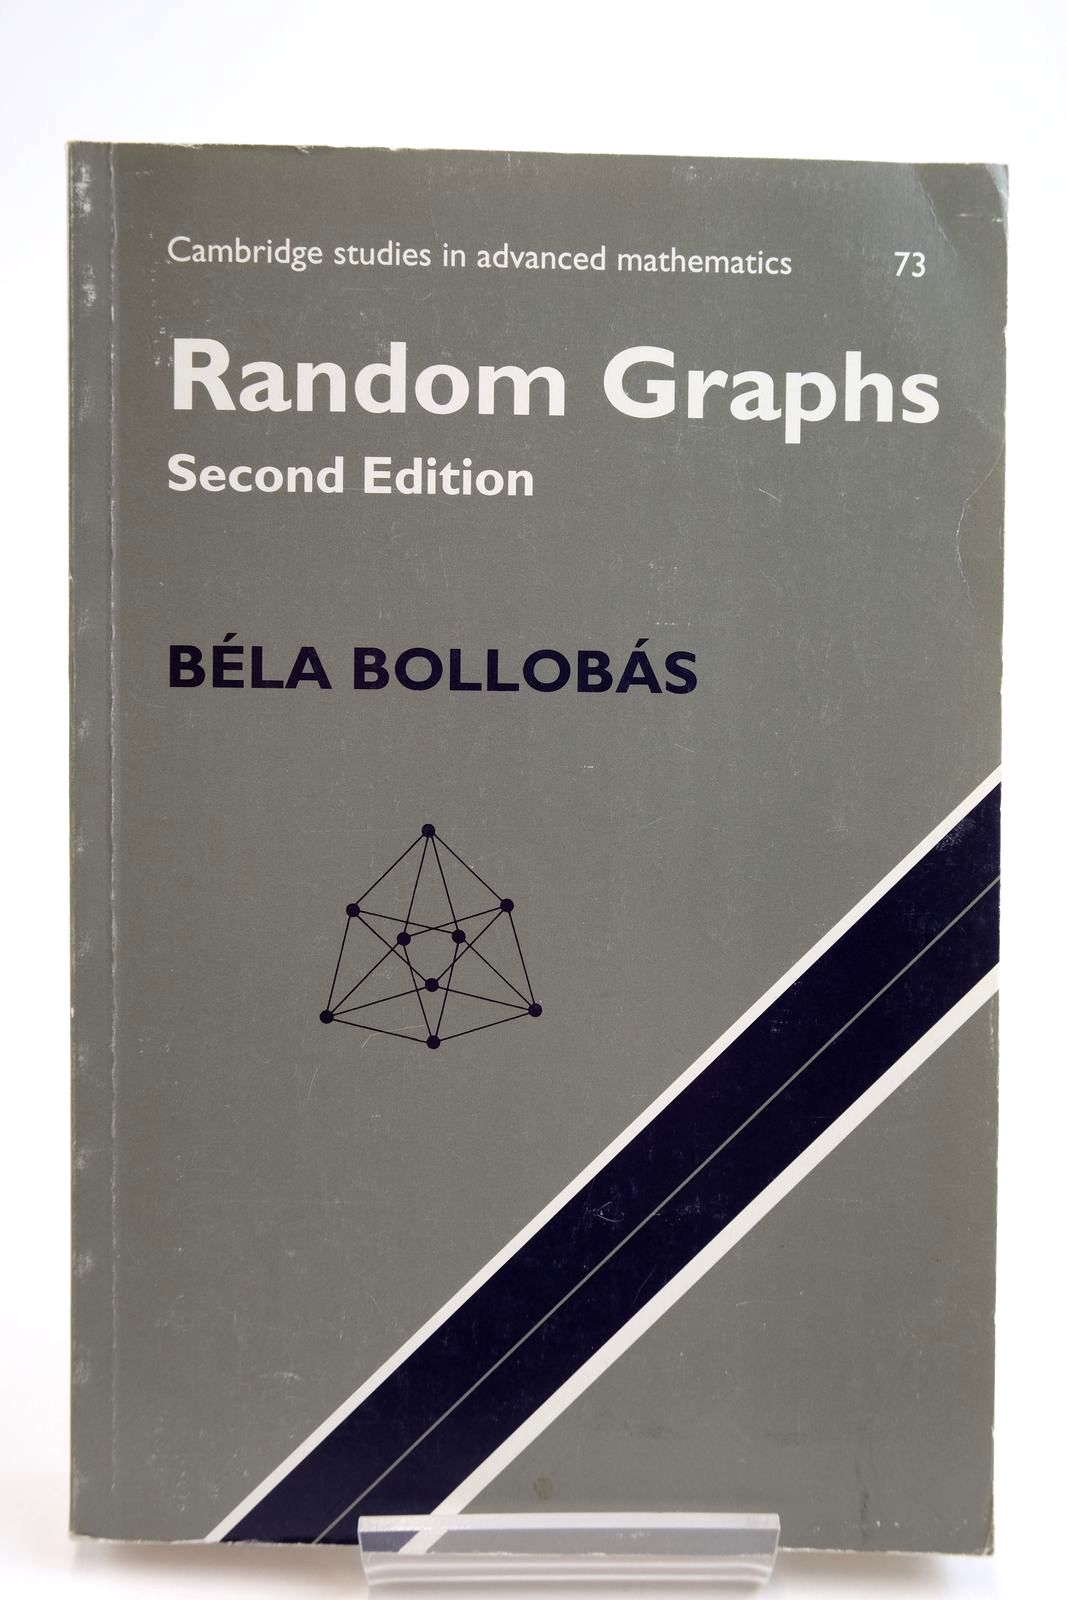 Photo of RANDOM GRAPHS written by Bollobas, Bela published by Press Syndicate Of The University Of Cambridge (STOCK CODE: 2134103)  for sale by Stella & Rose's Books